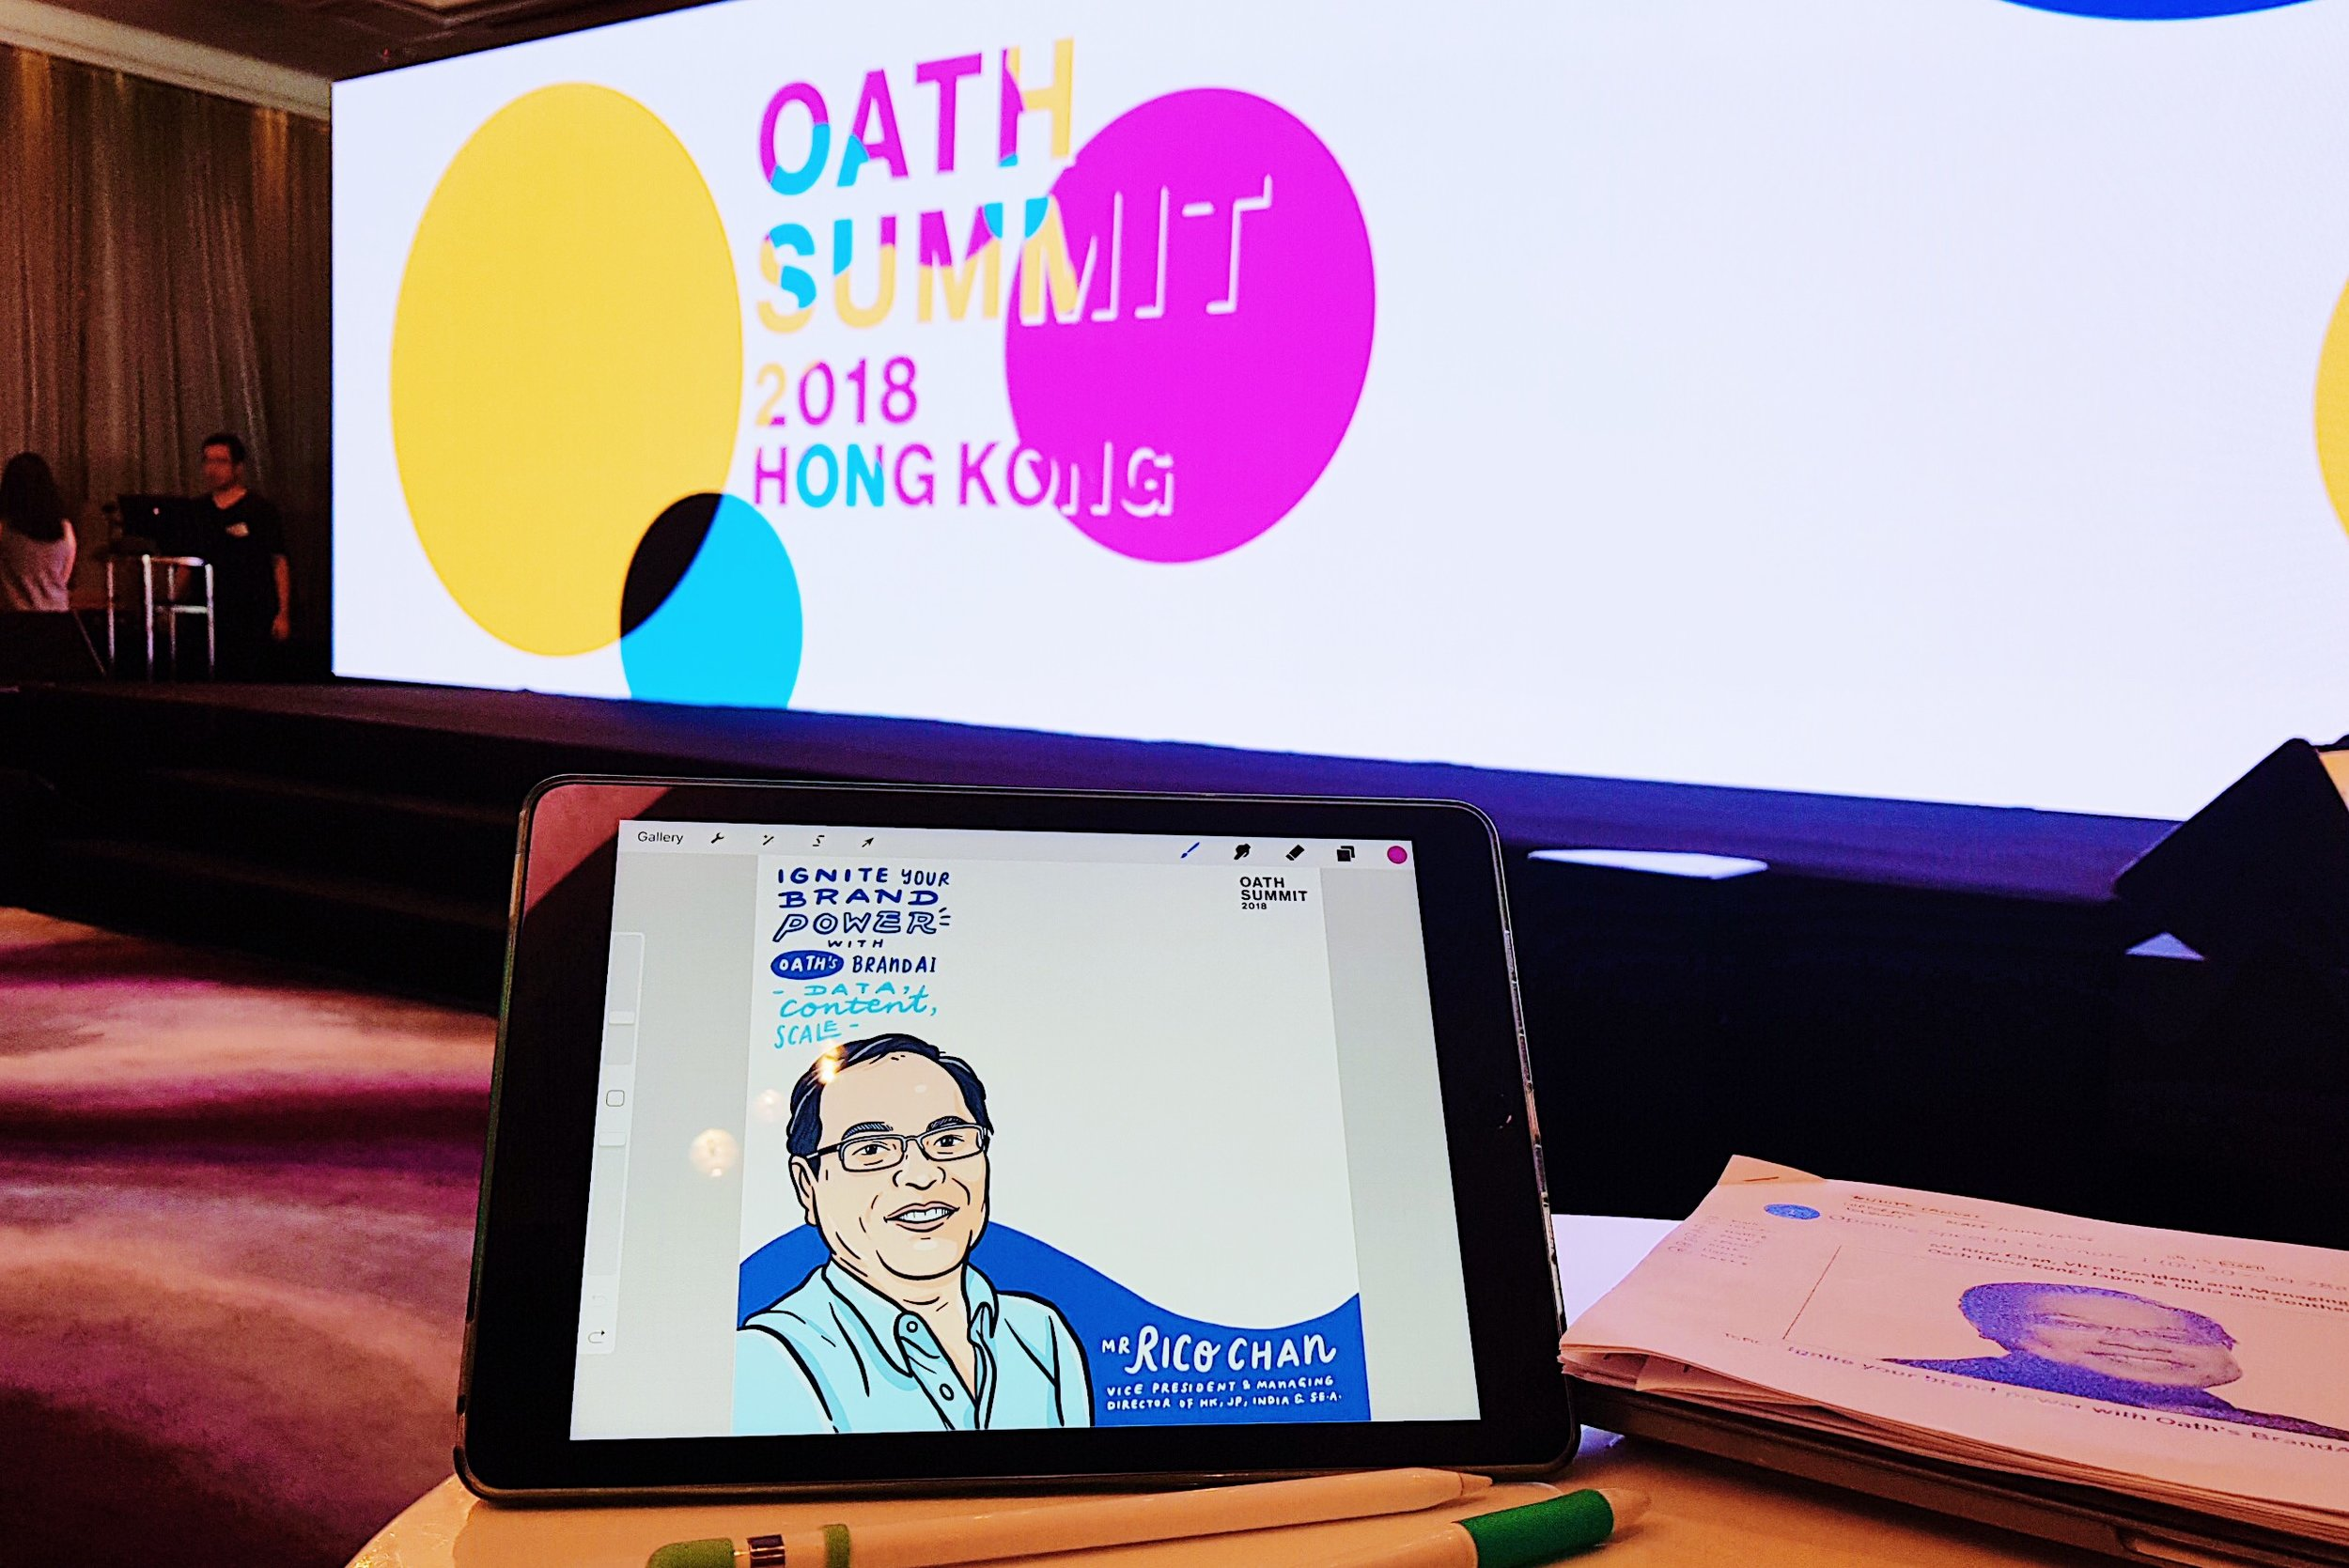 Oath Summit 2018    Hong Kong